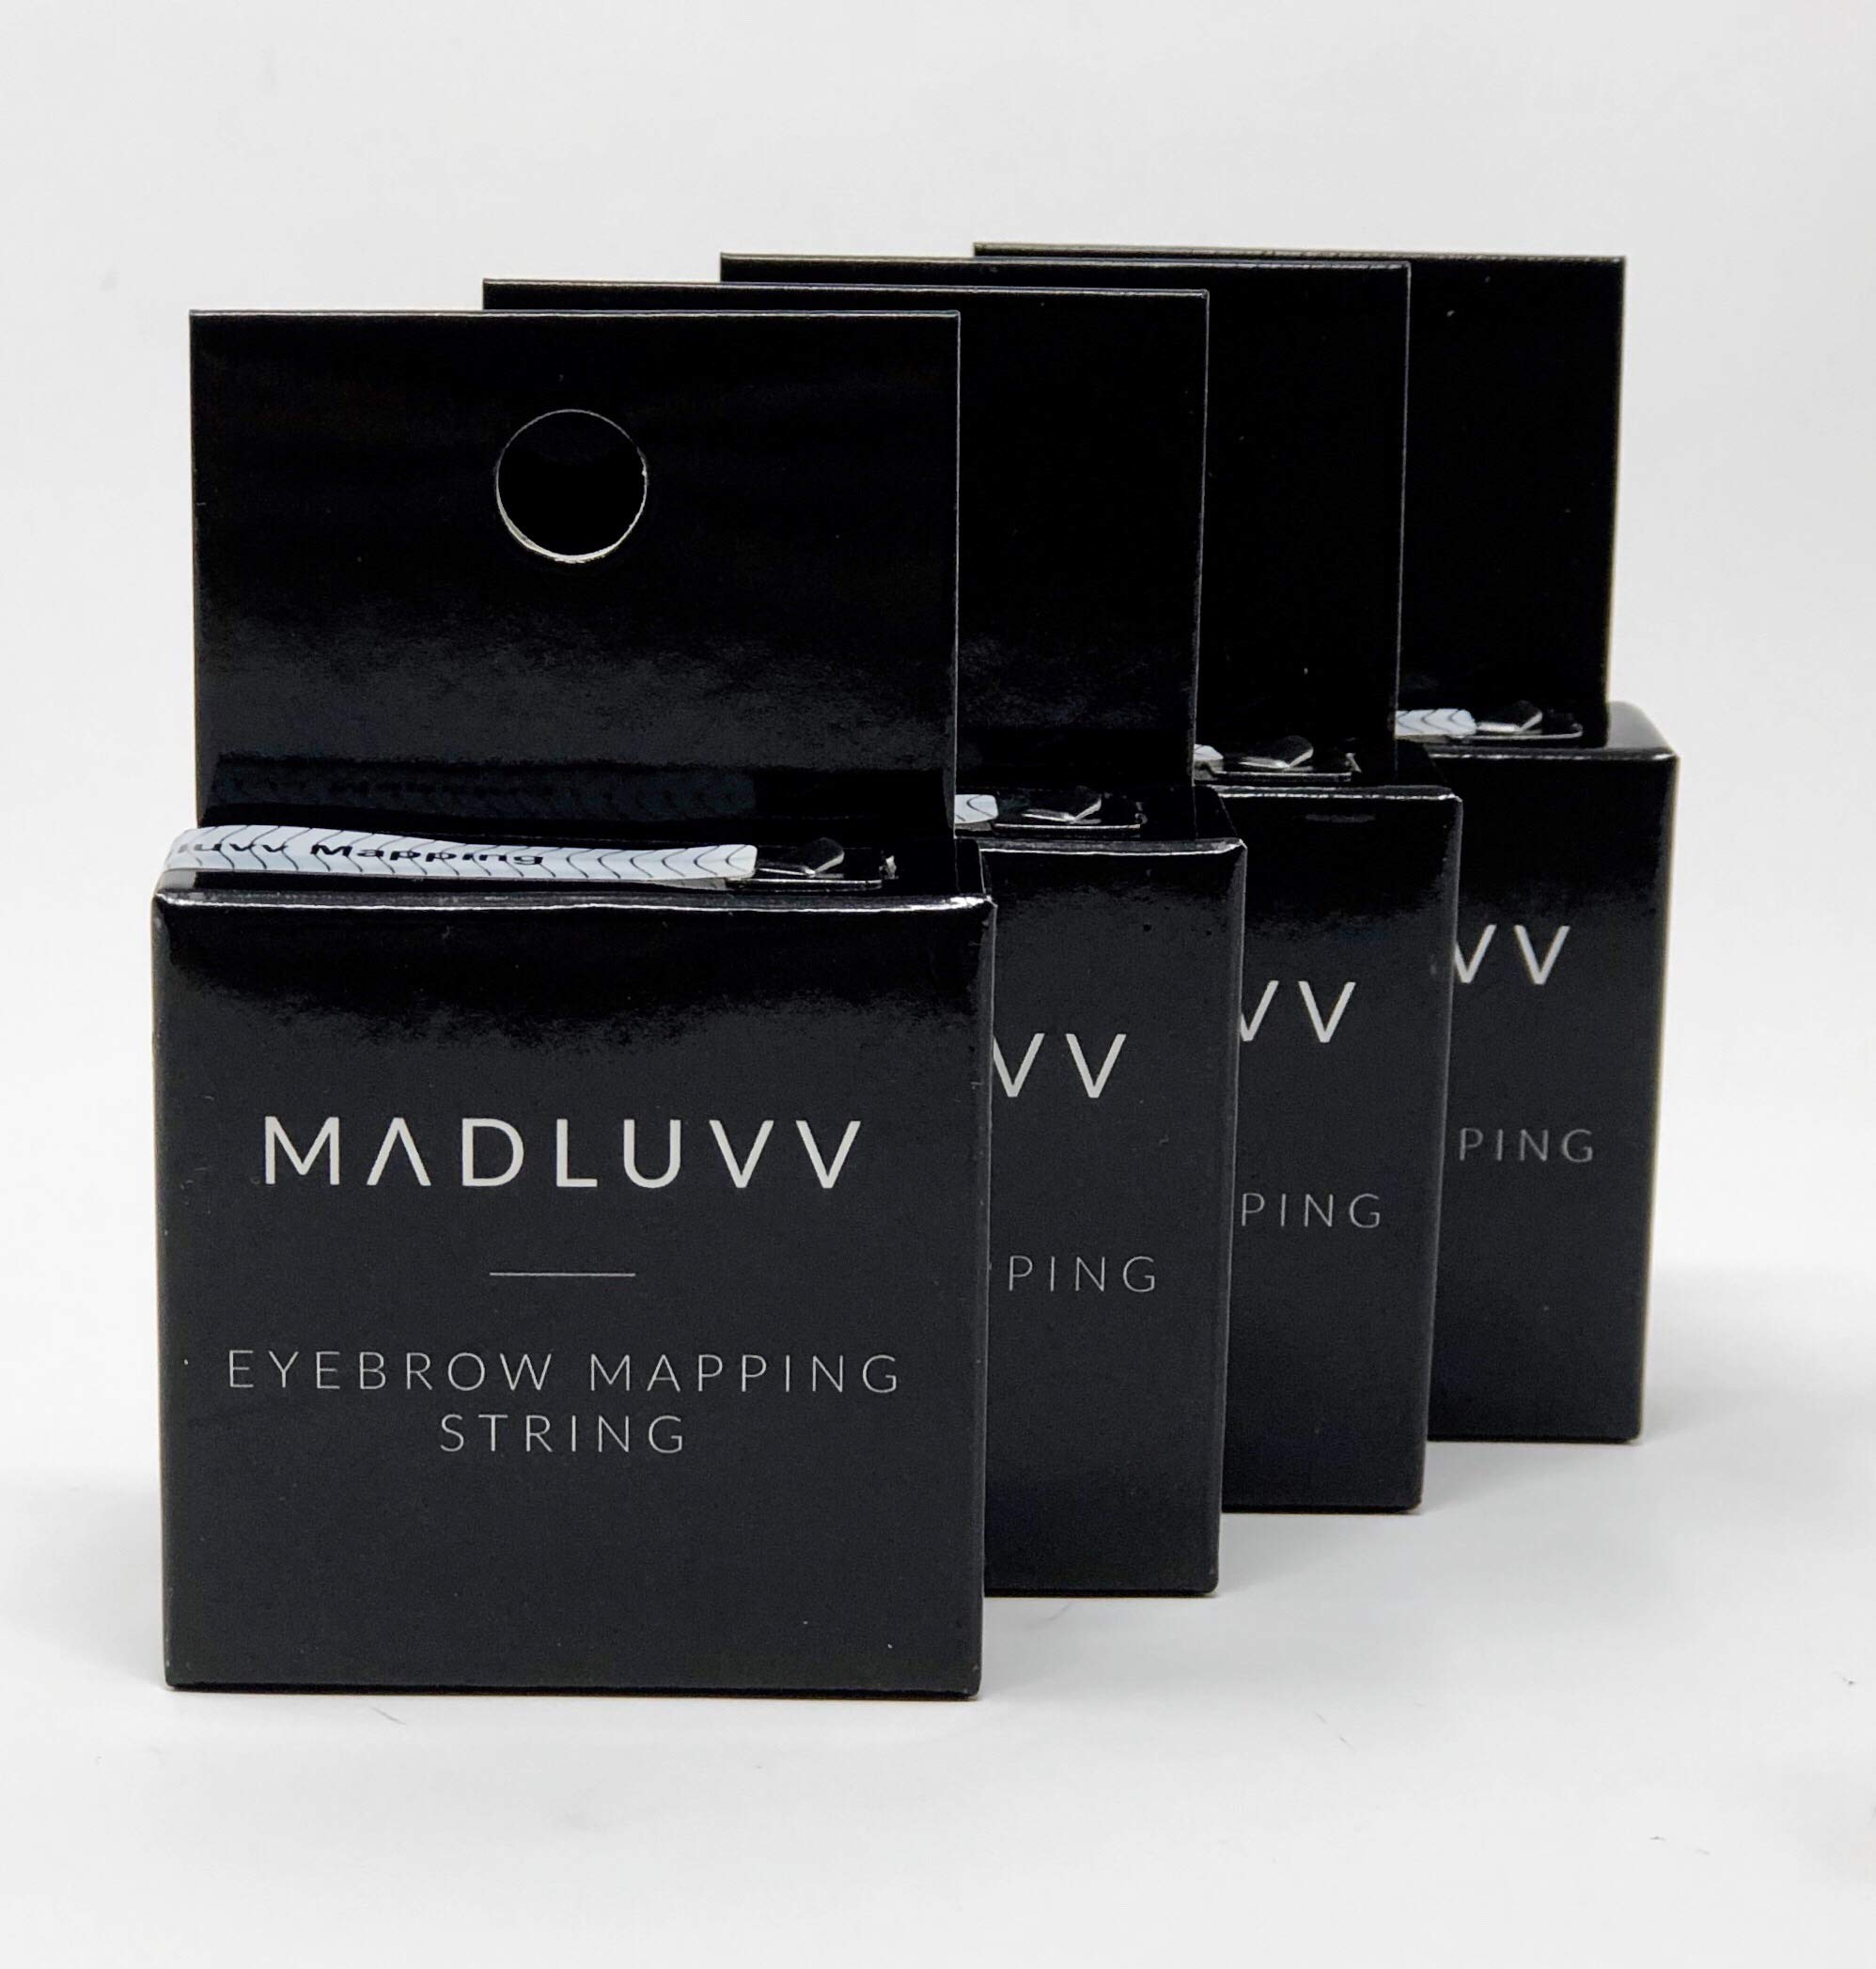 Best Brow Mapping Pre- Inked String For Microblading (4 Pack) by MADLUVV